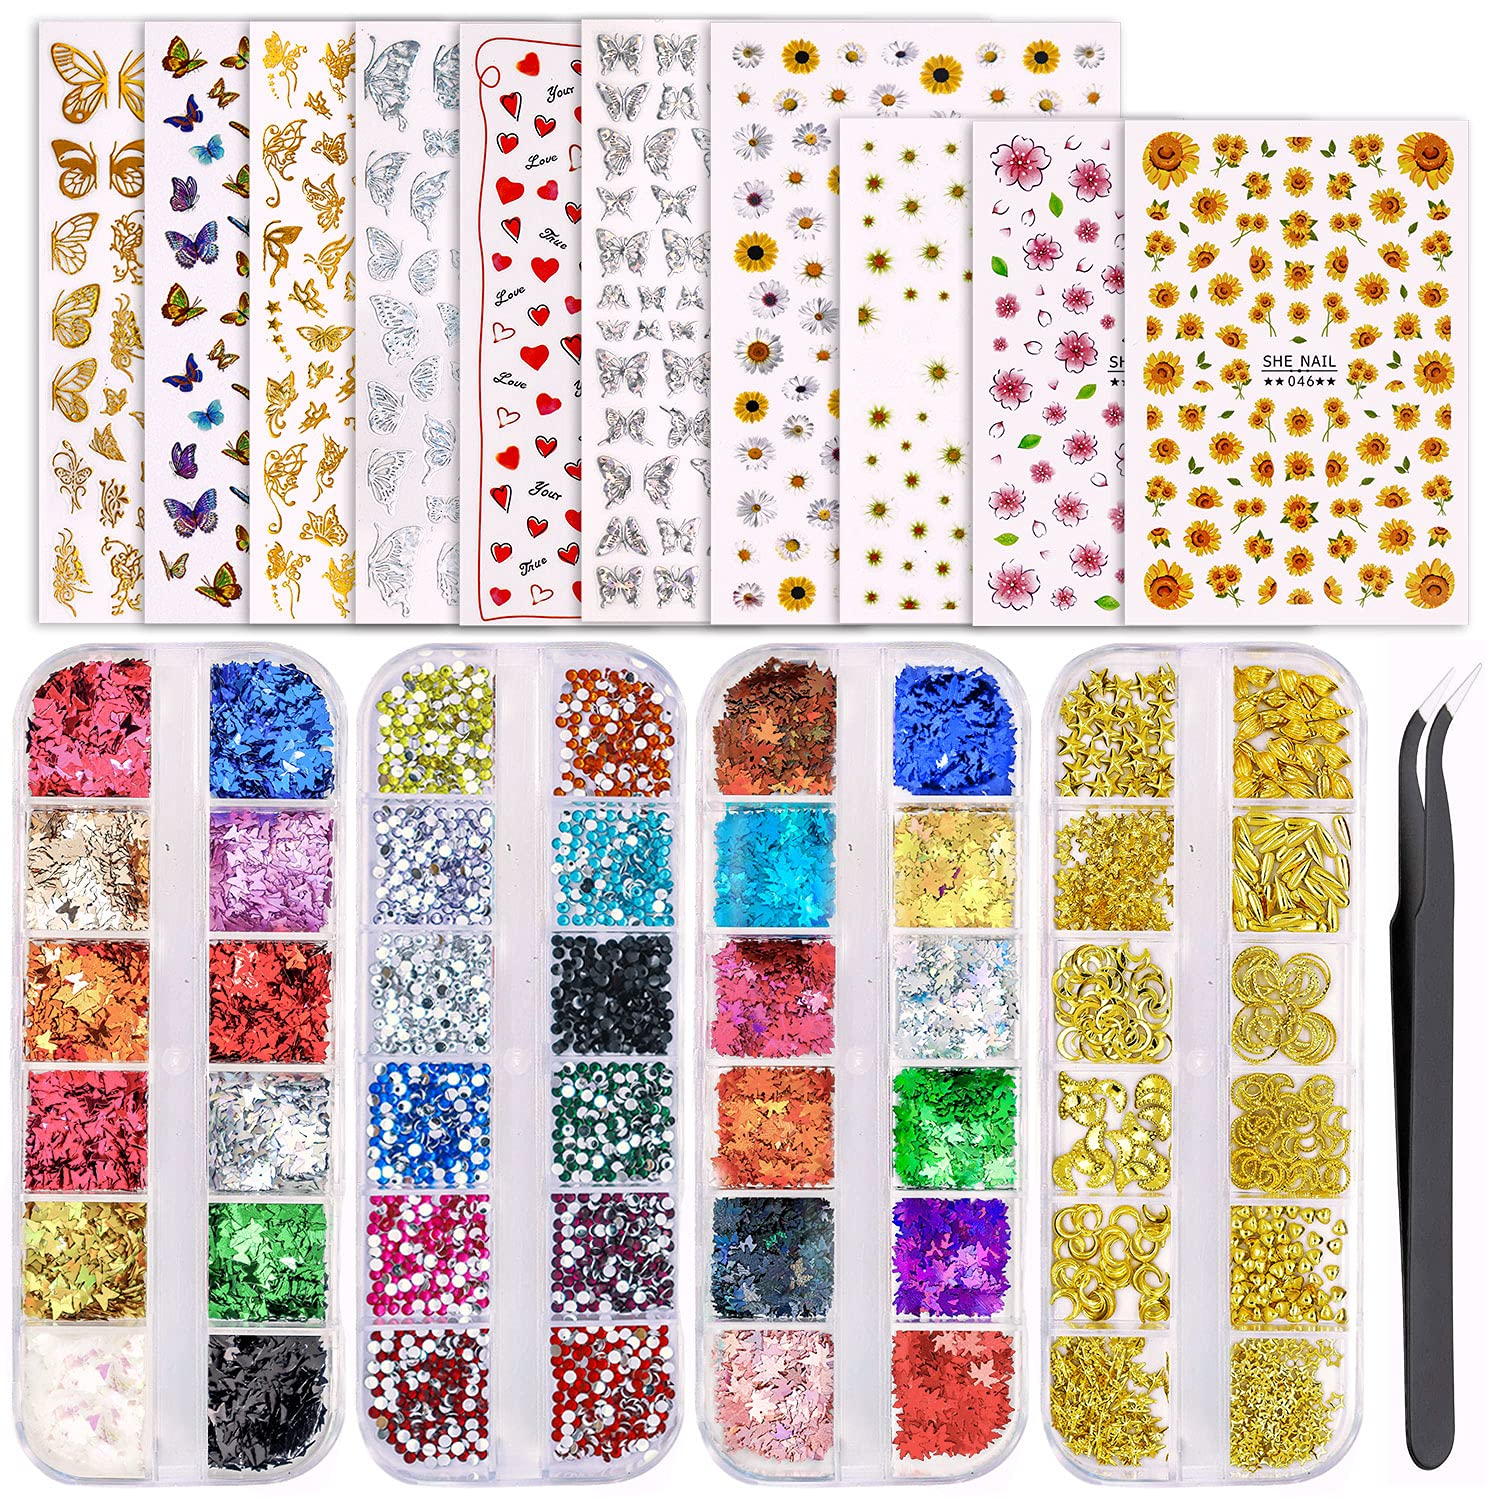 JOYJULY Professional Max Seasonal Wrap Introduction 66% OFF 3D Nail Art Decoration with Set S 10 Sheets